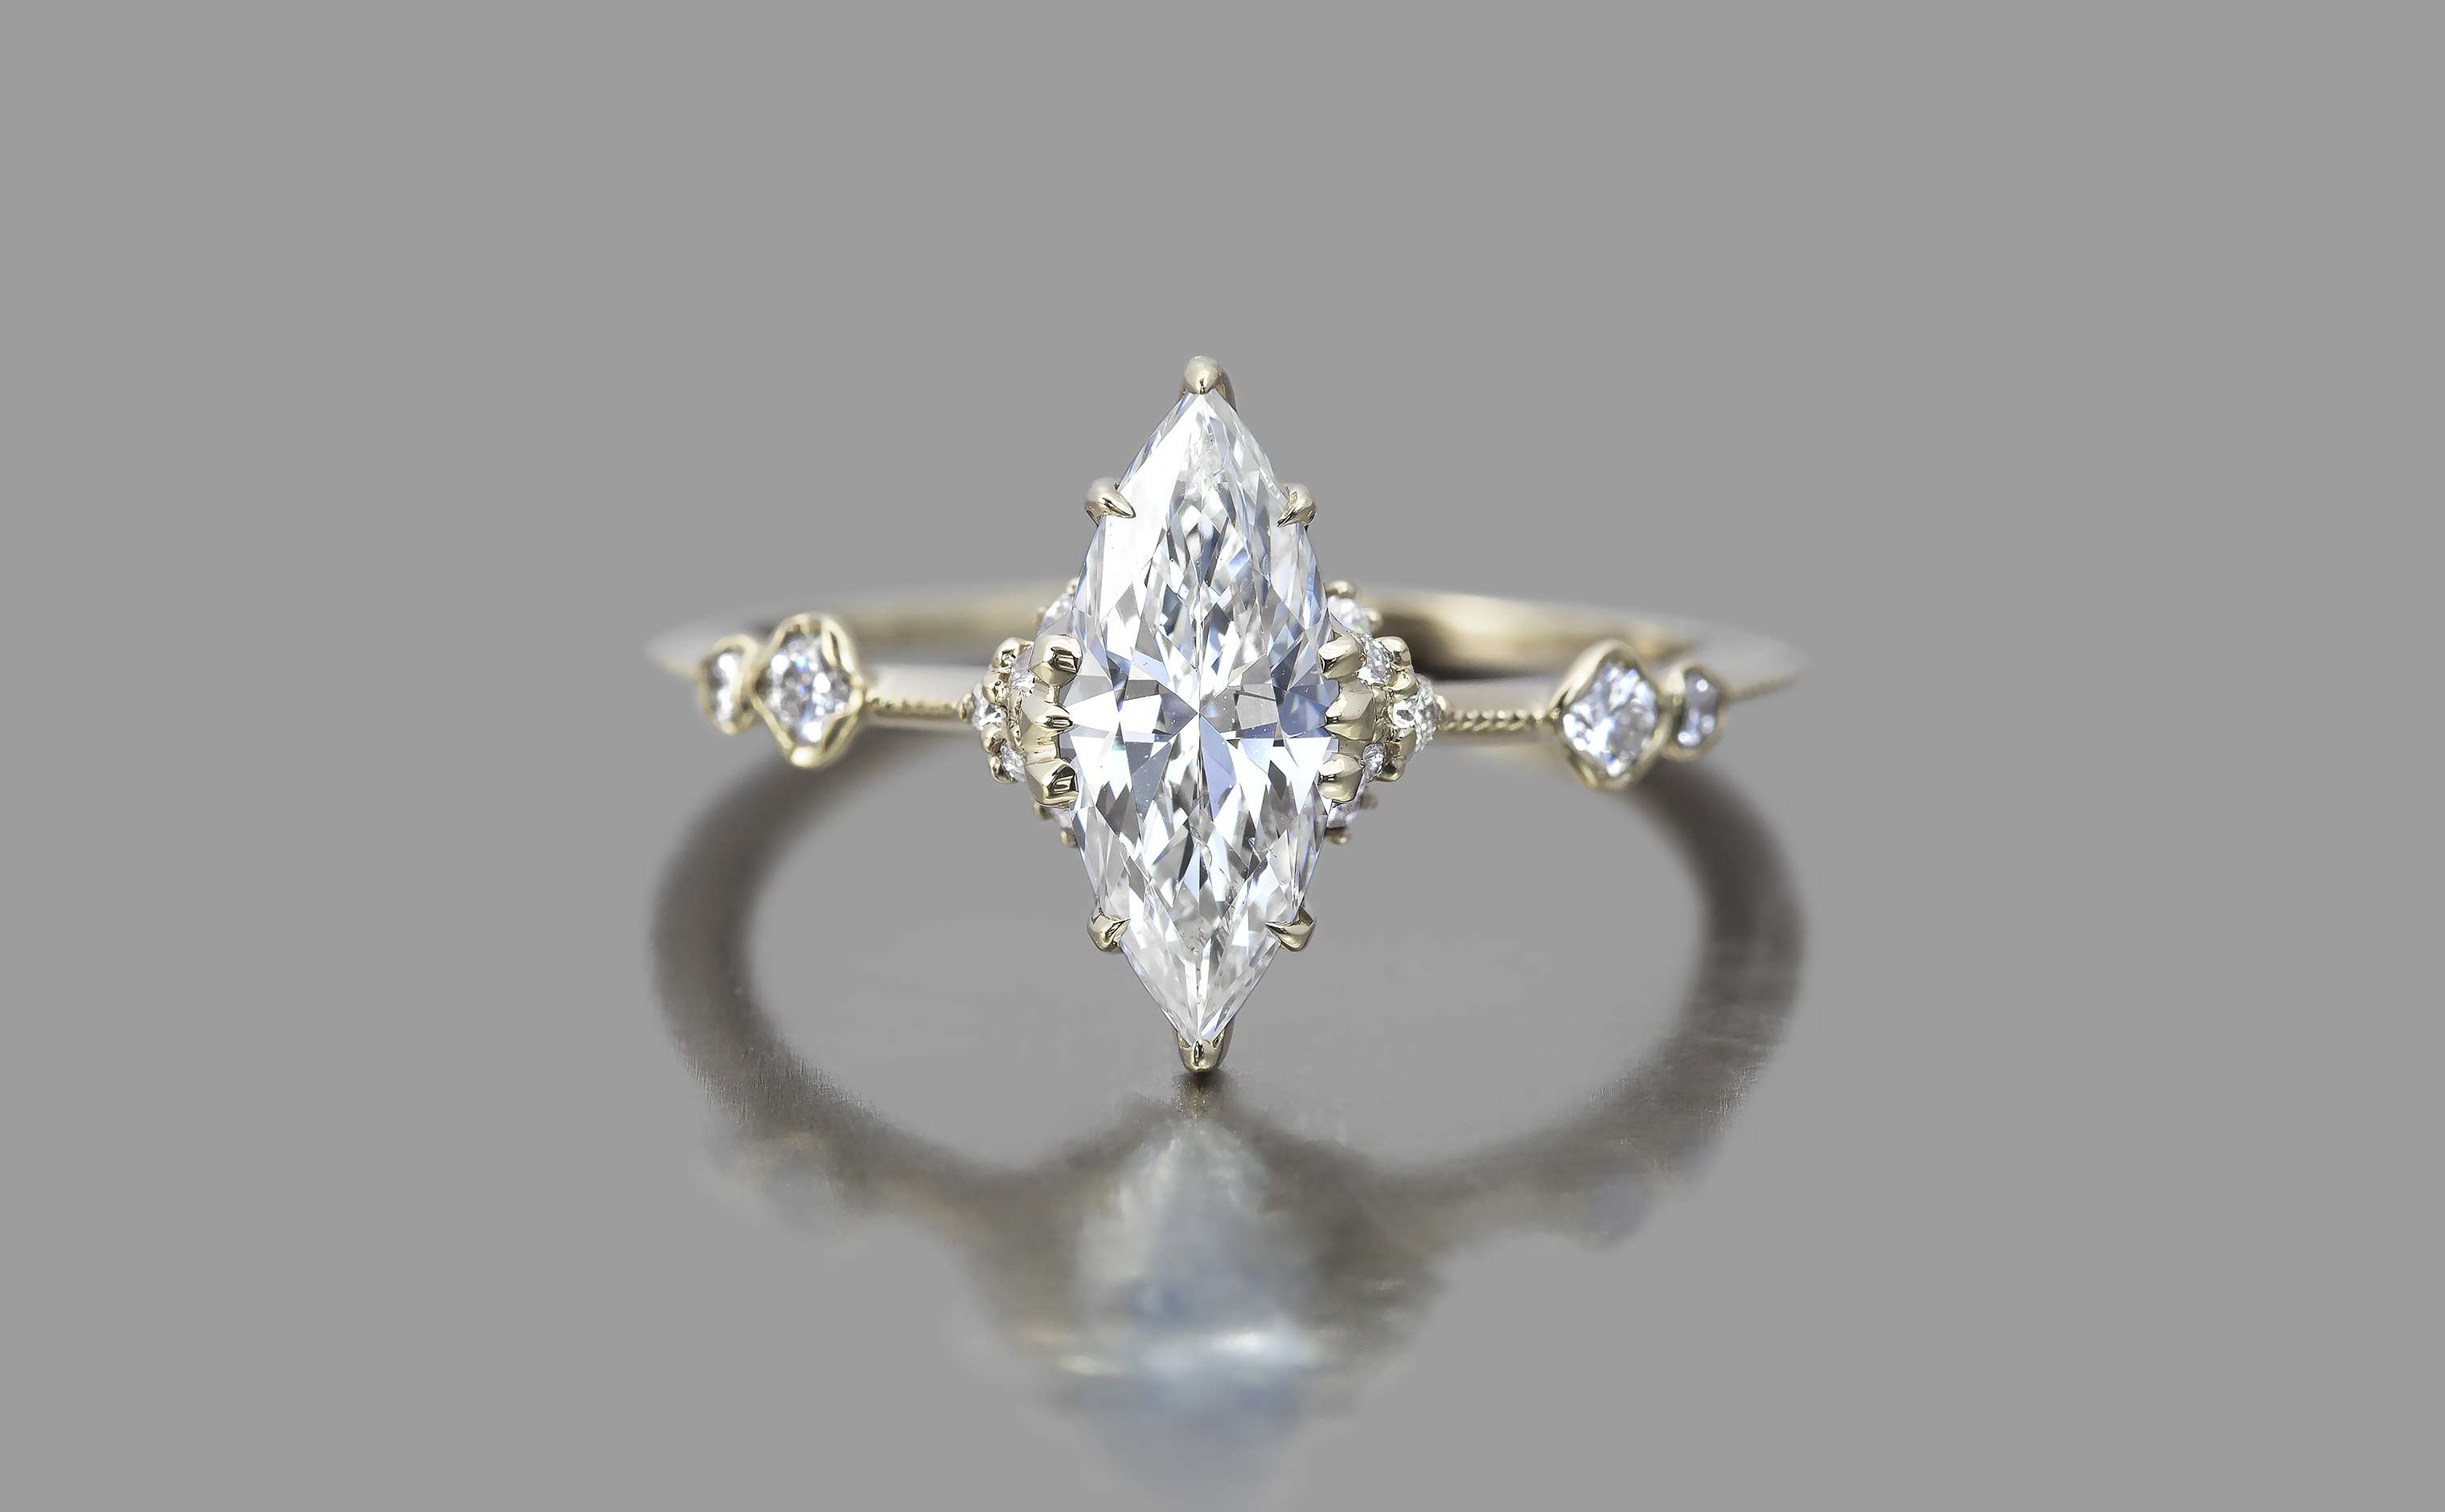 23 Marquise Engagement Rings That Prove The Style Is Totally Back